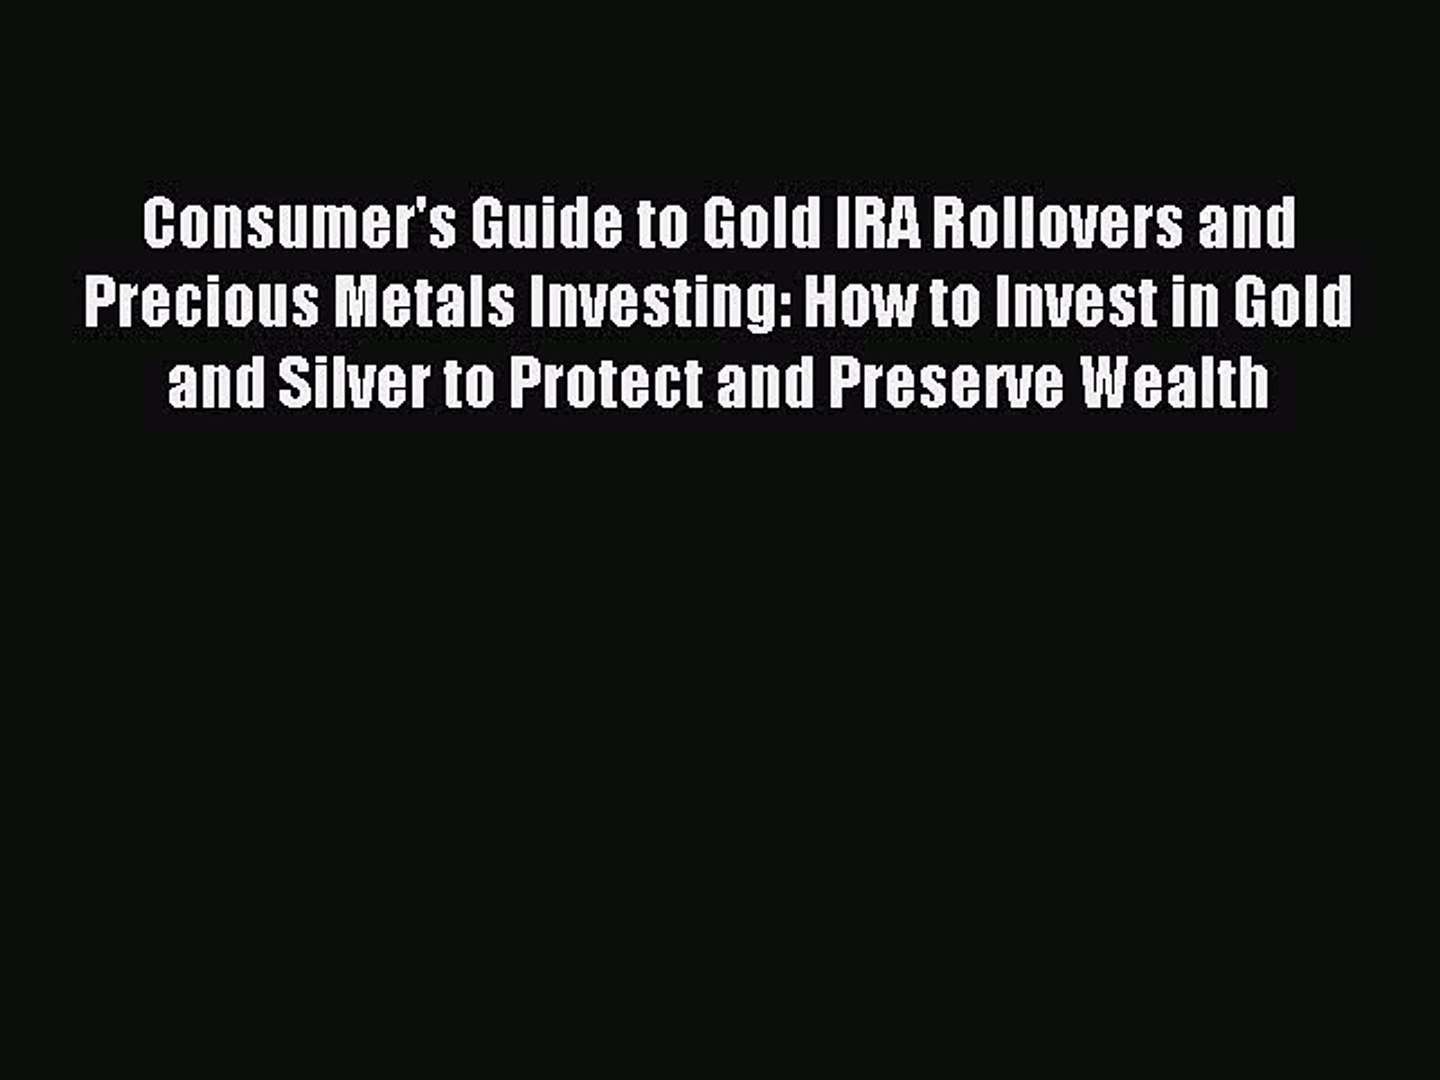 Read Consumer's Guide to Gold IRA Rollovers and Precious Metals Investing: How to Invest in